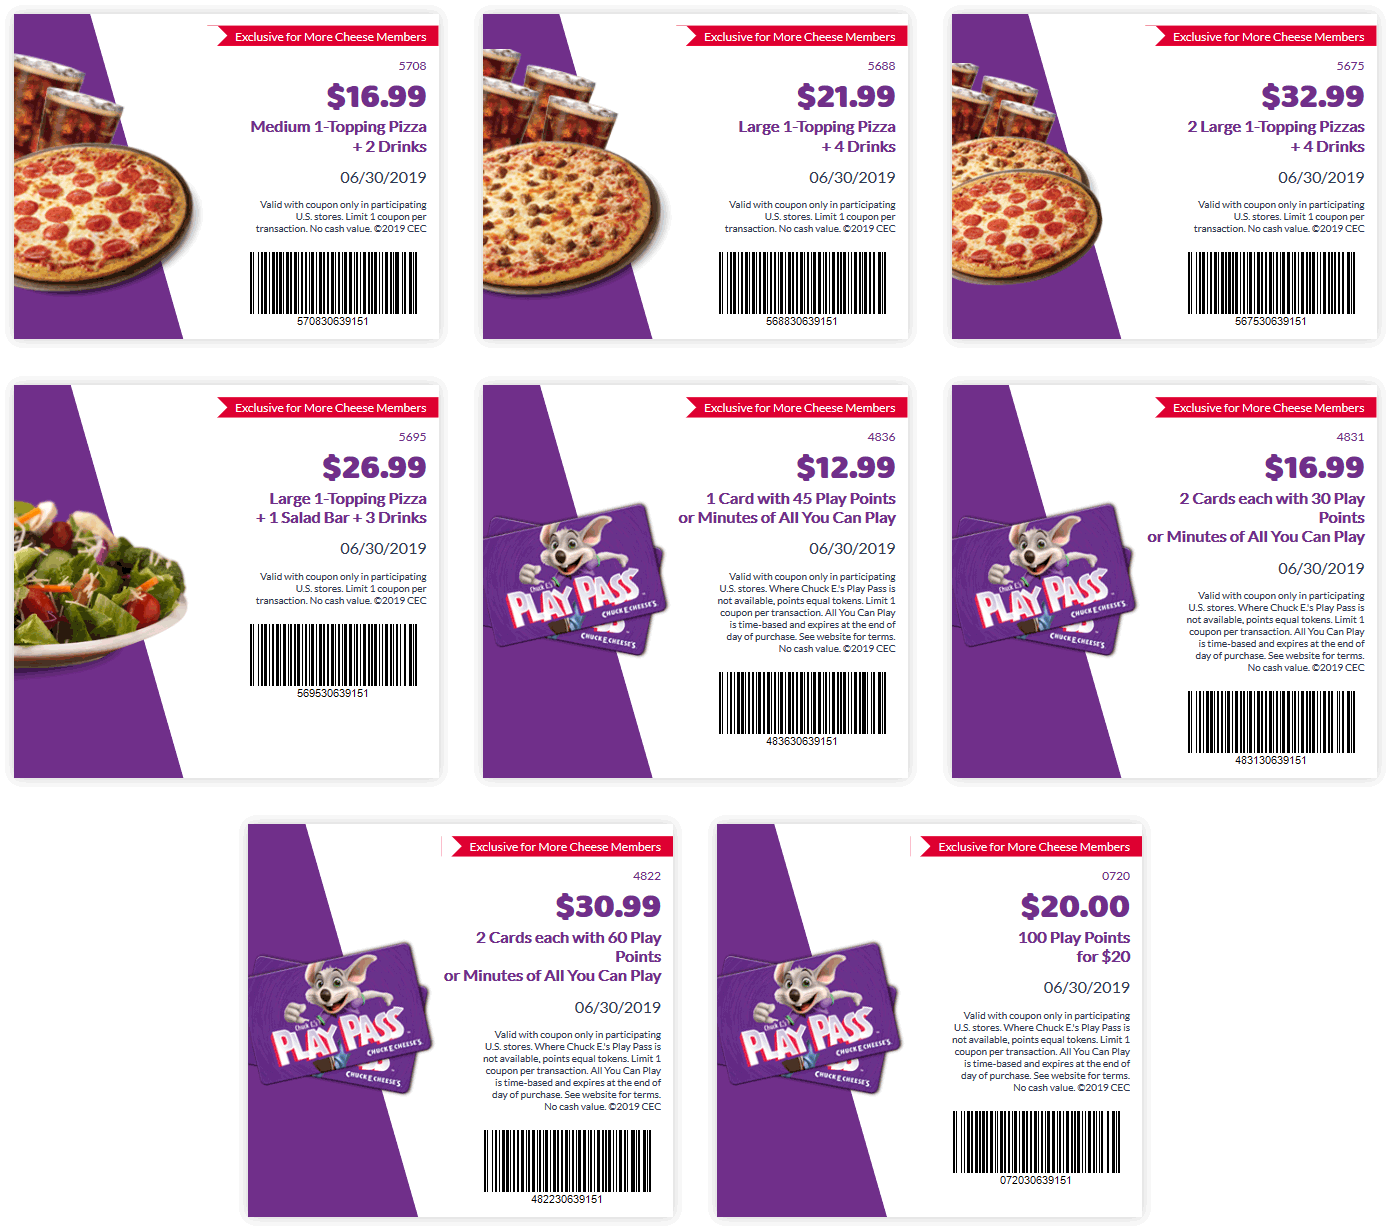 ChuckE.Cheese.com Promo Coupon 100 play points for $20 & more at Chuck E. Cheese pizza